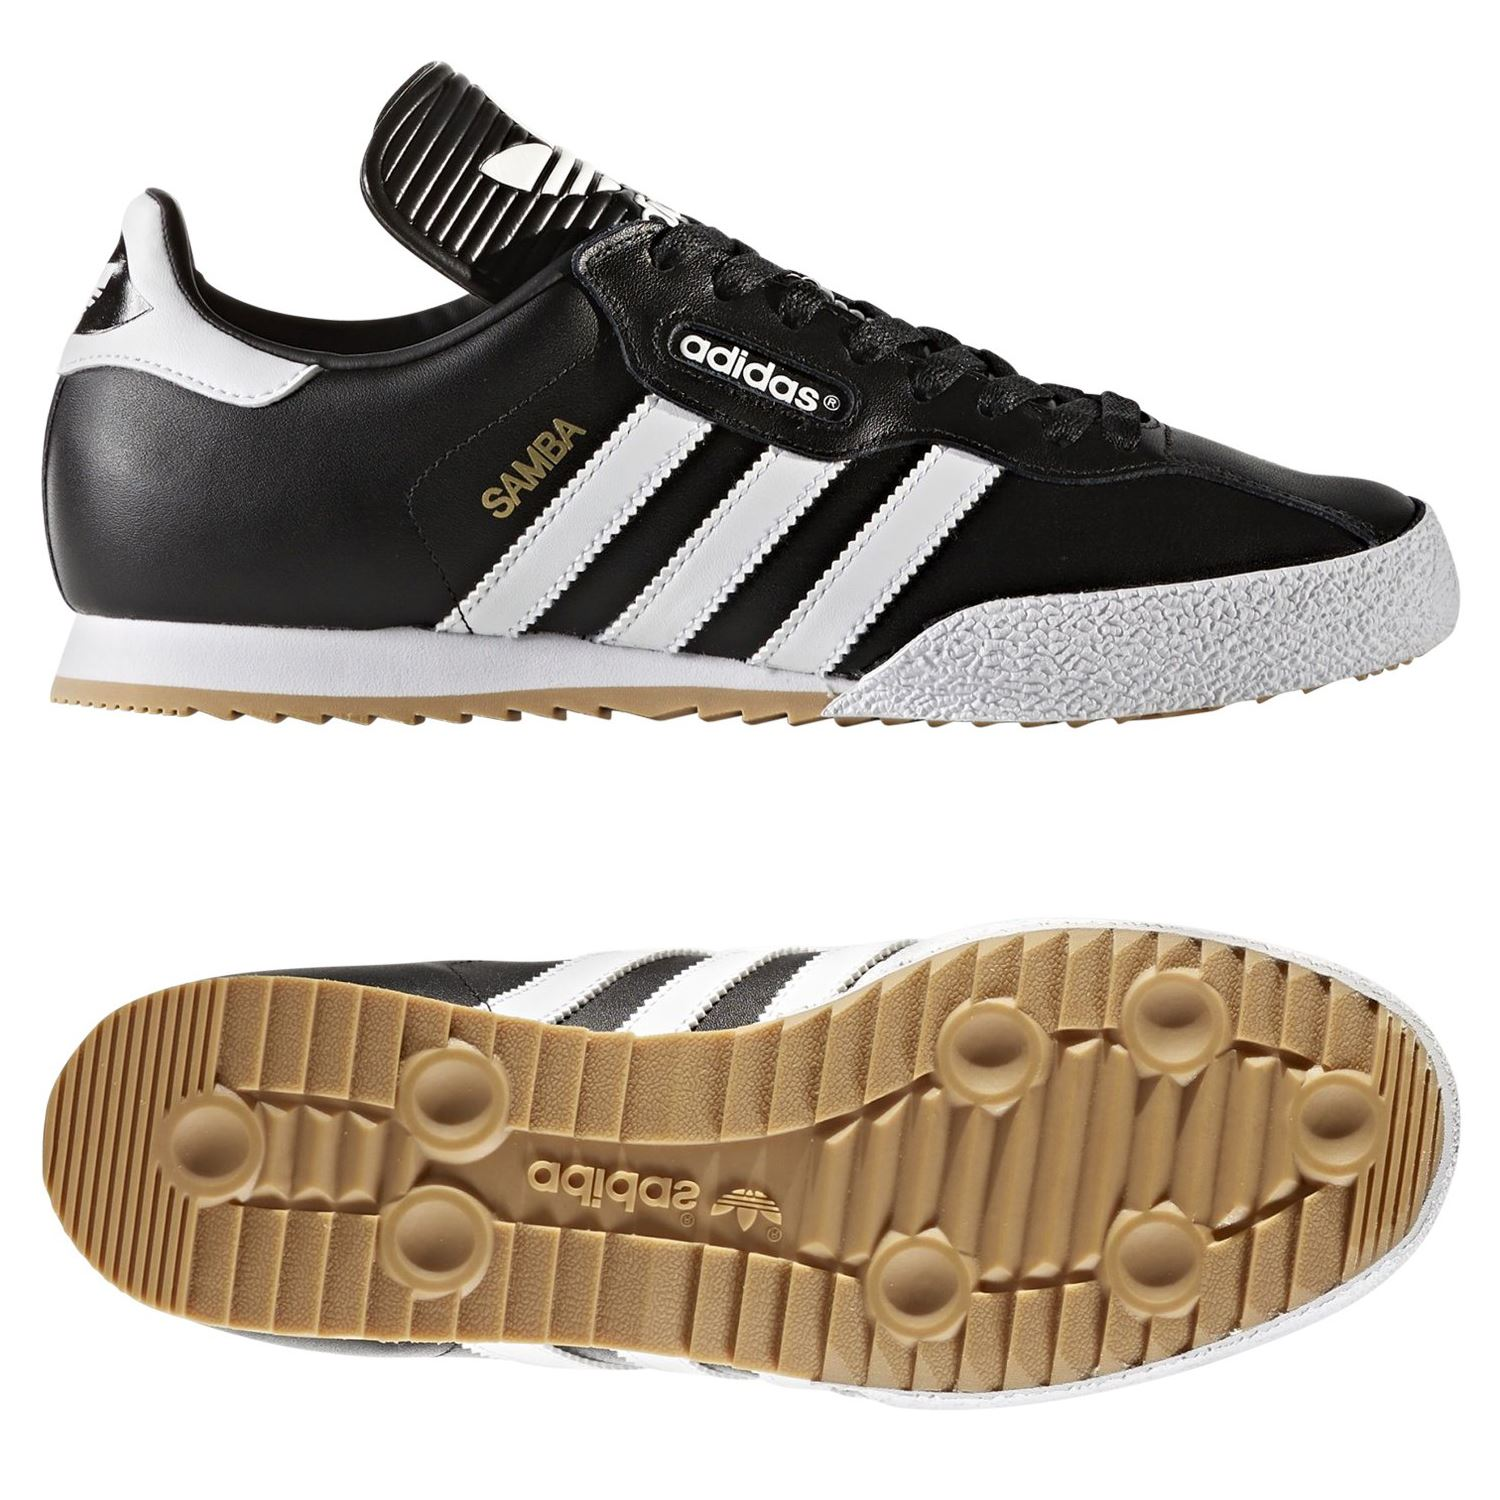 SAMBA SUPER instructores negro RETRO clásico zapatos Adidas ORIGINALS Mens  de cuero 129fce444549c